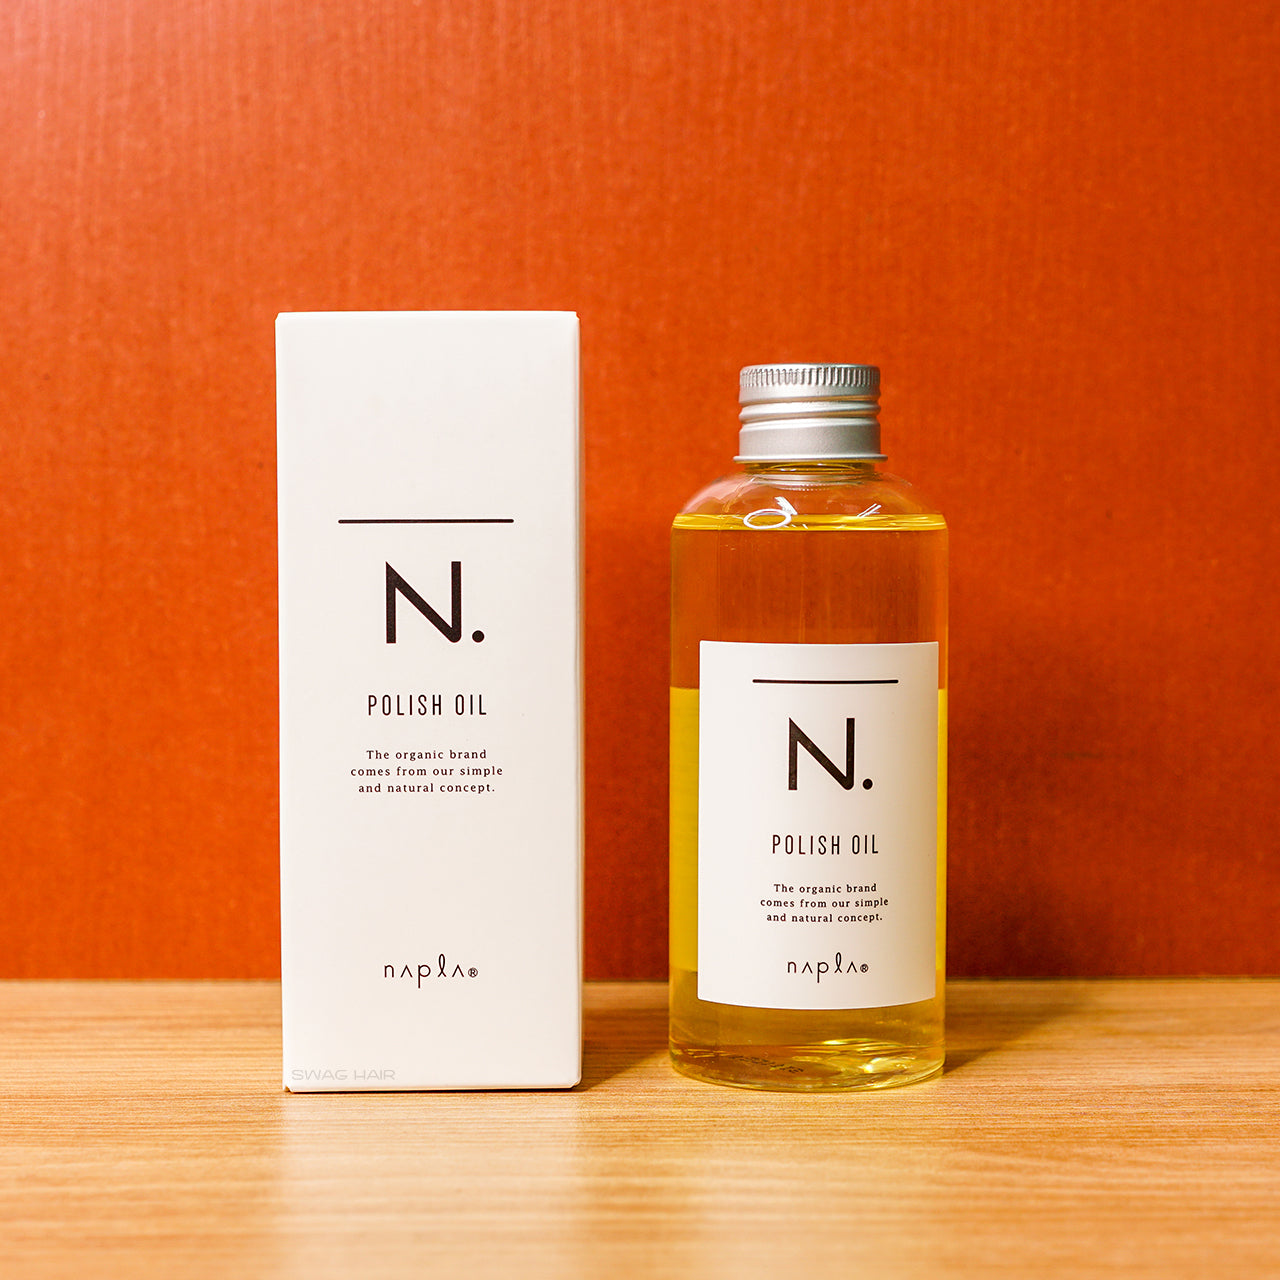 NAPLA Polish Oil 甜橙果油